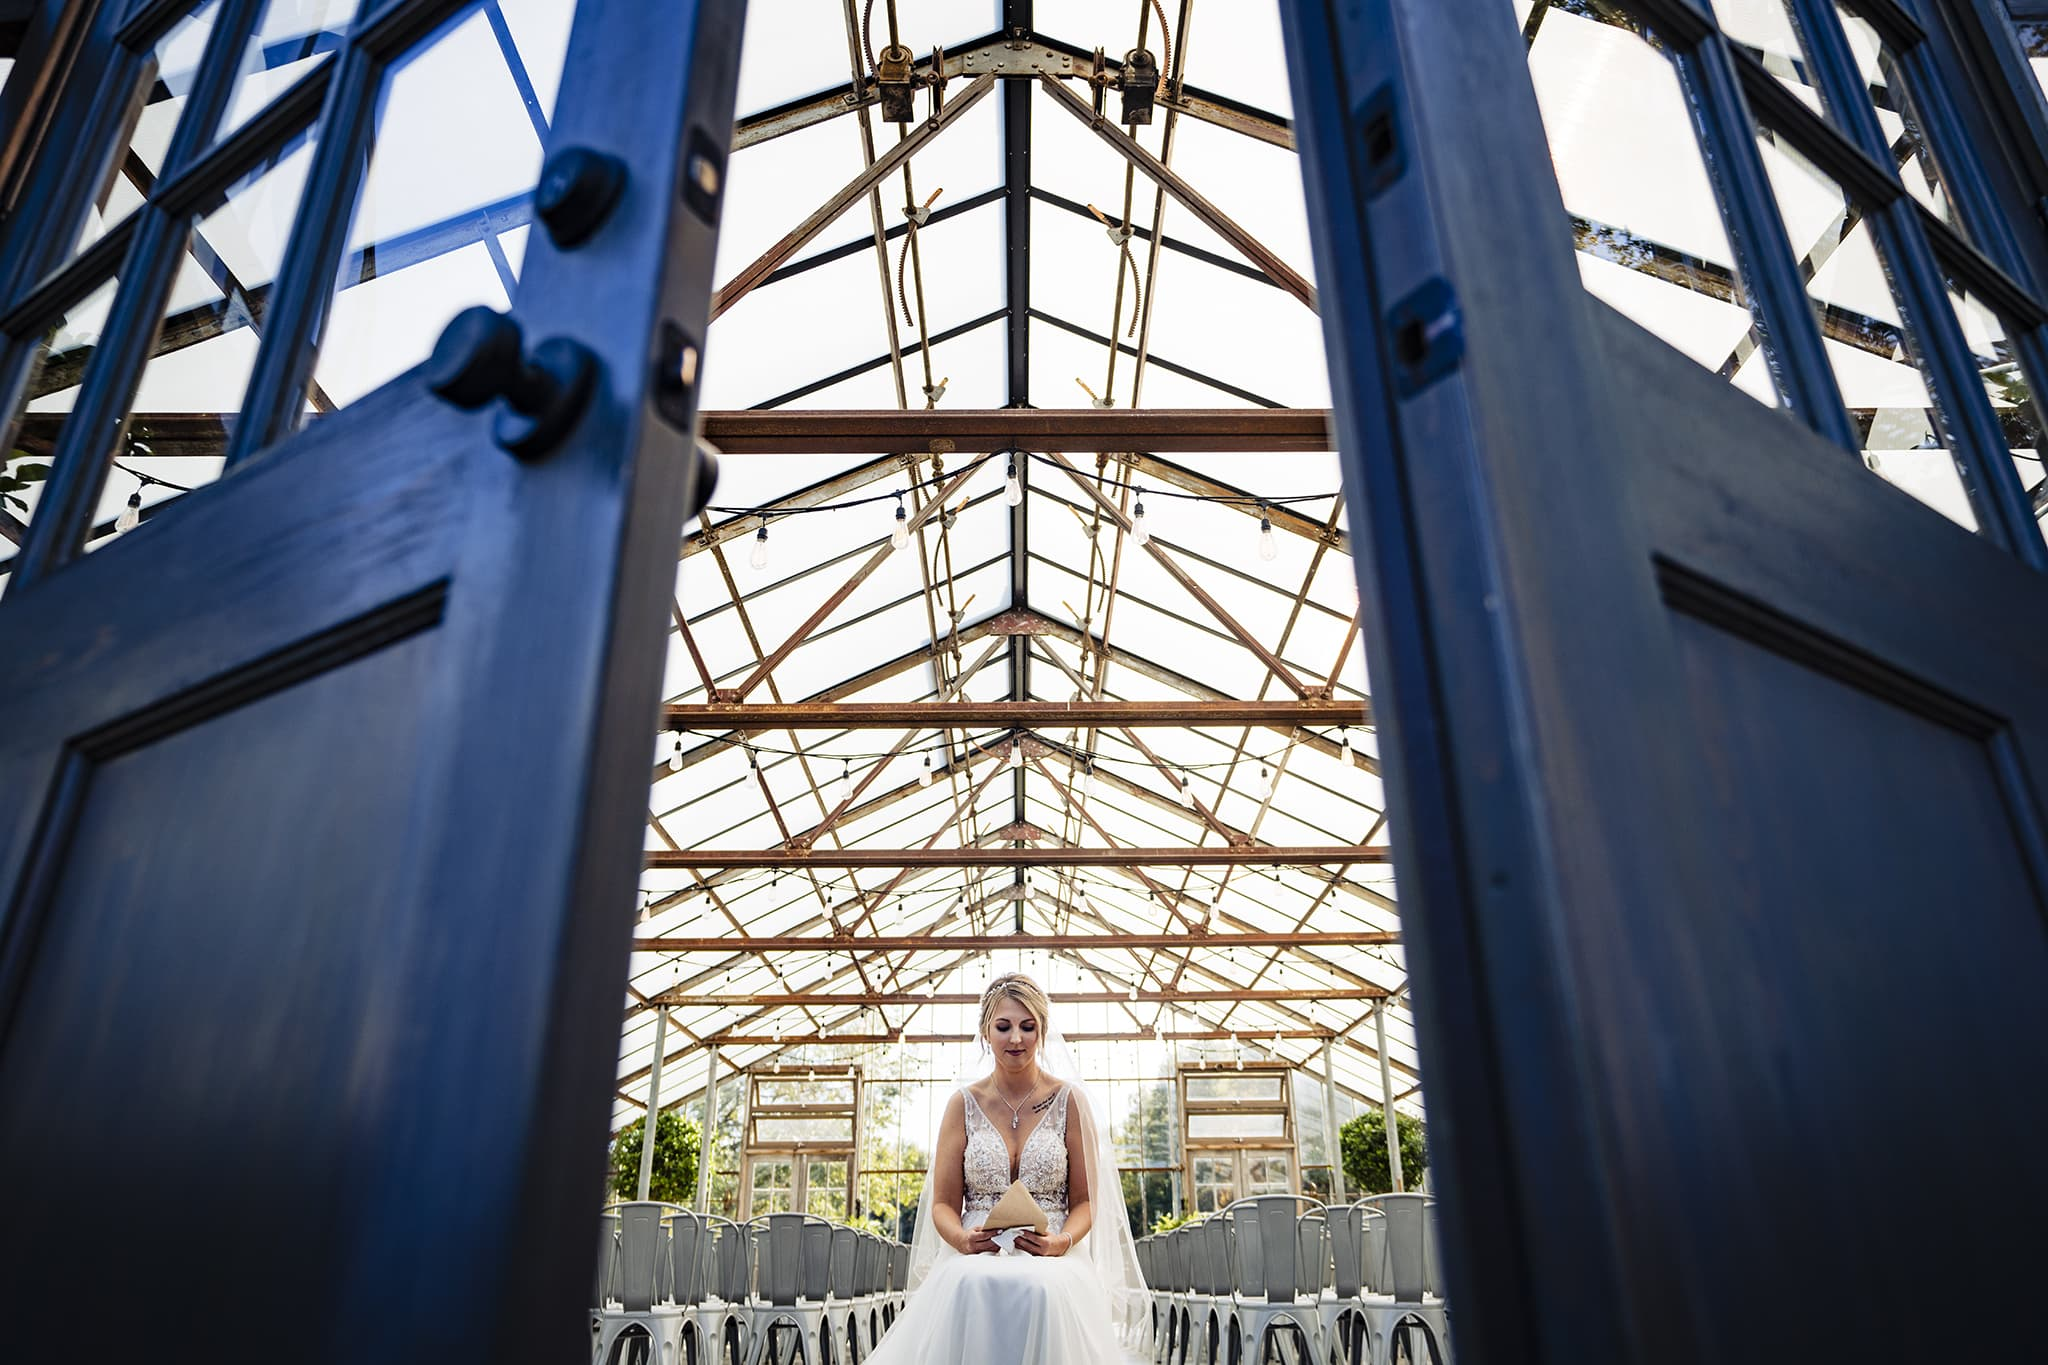 Bride reads note from groom in modern greenhouse wedding